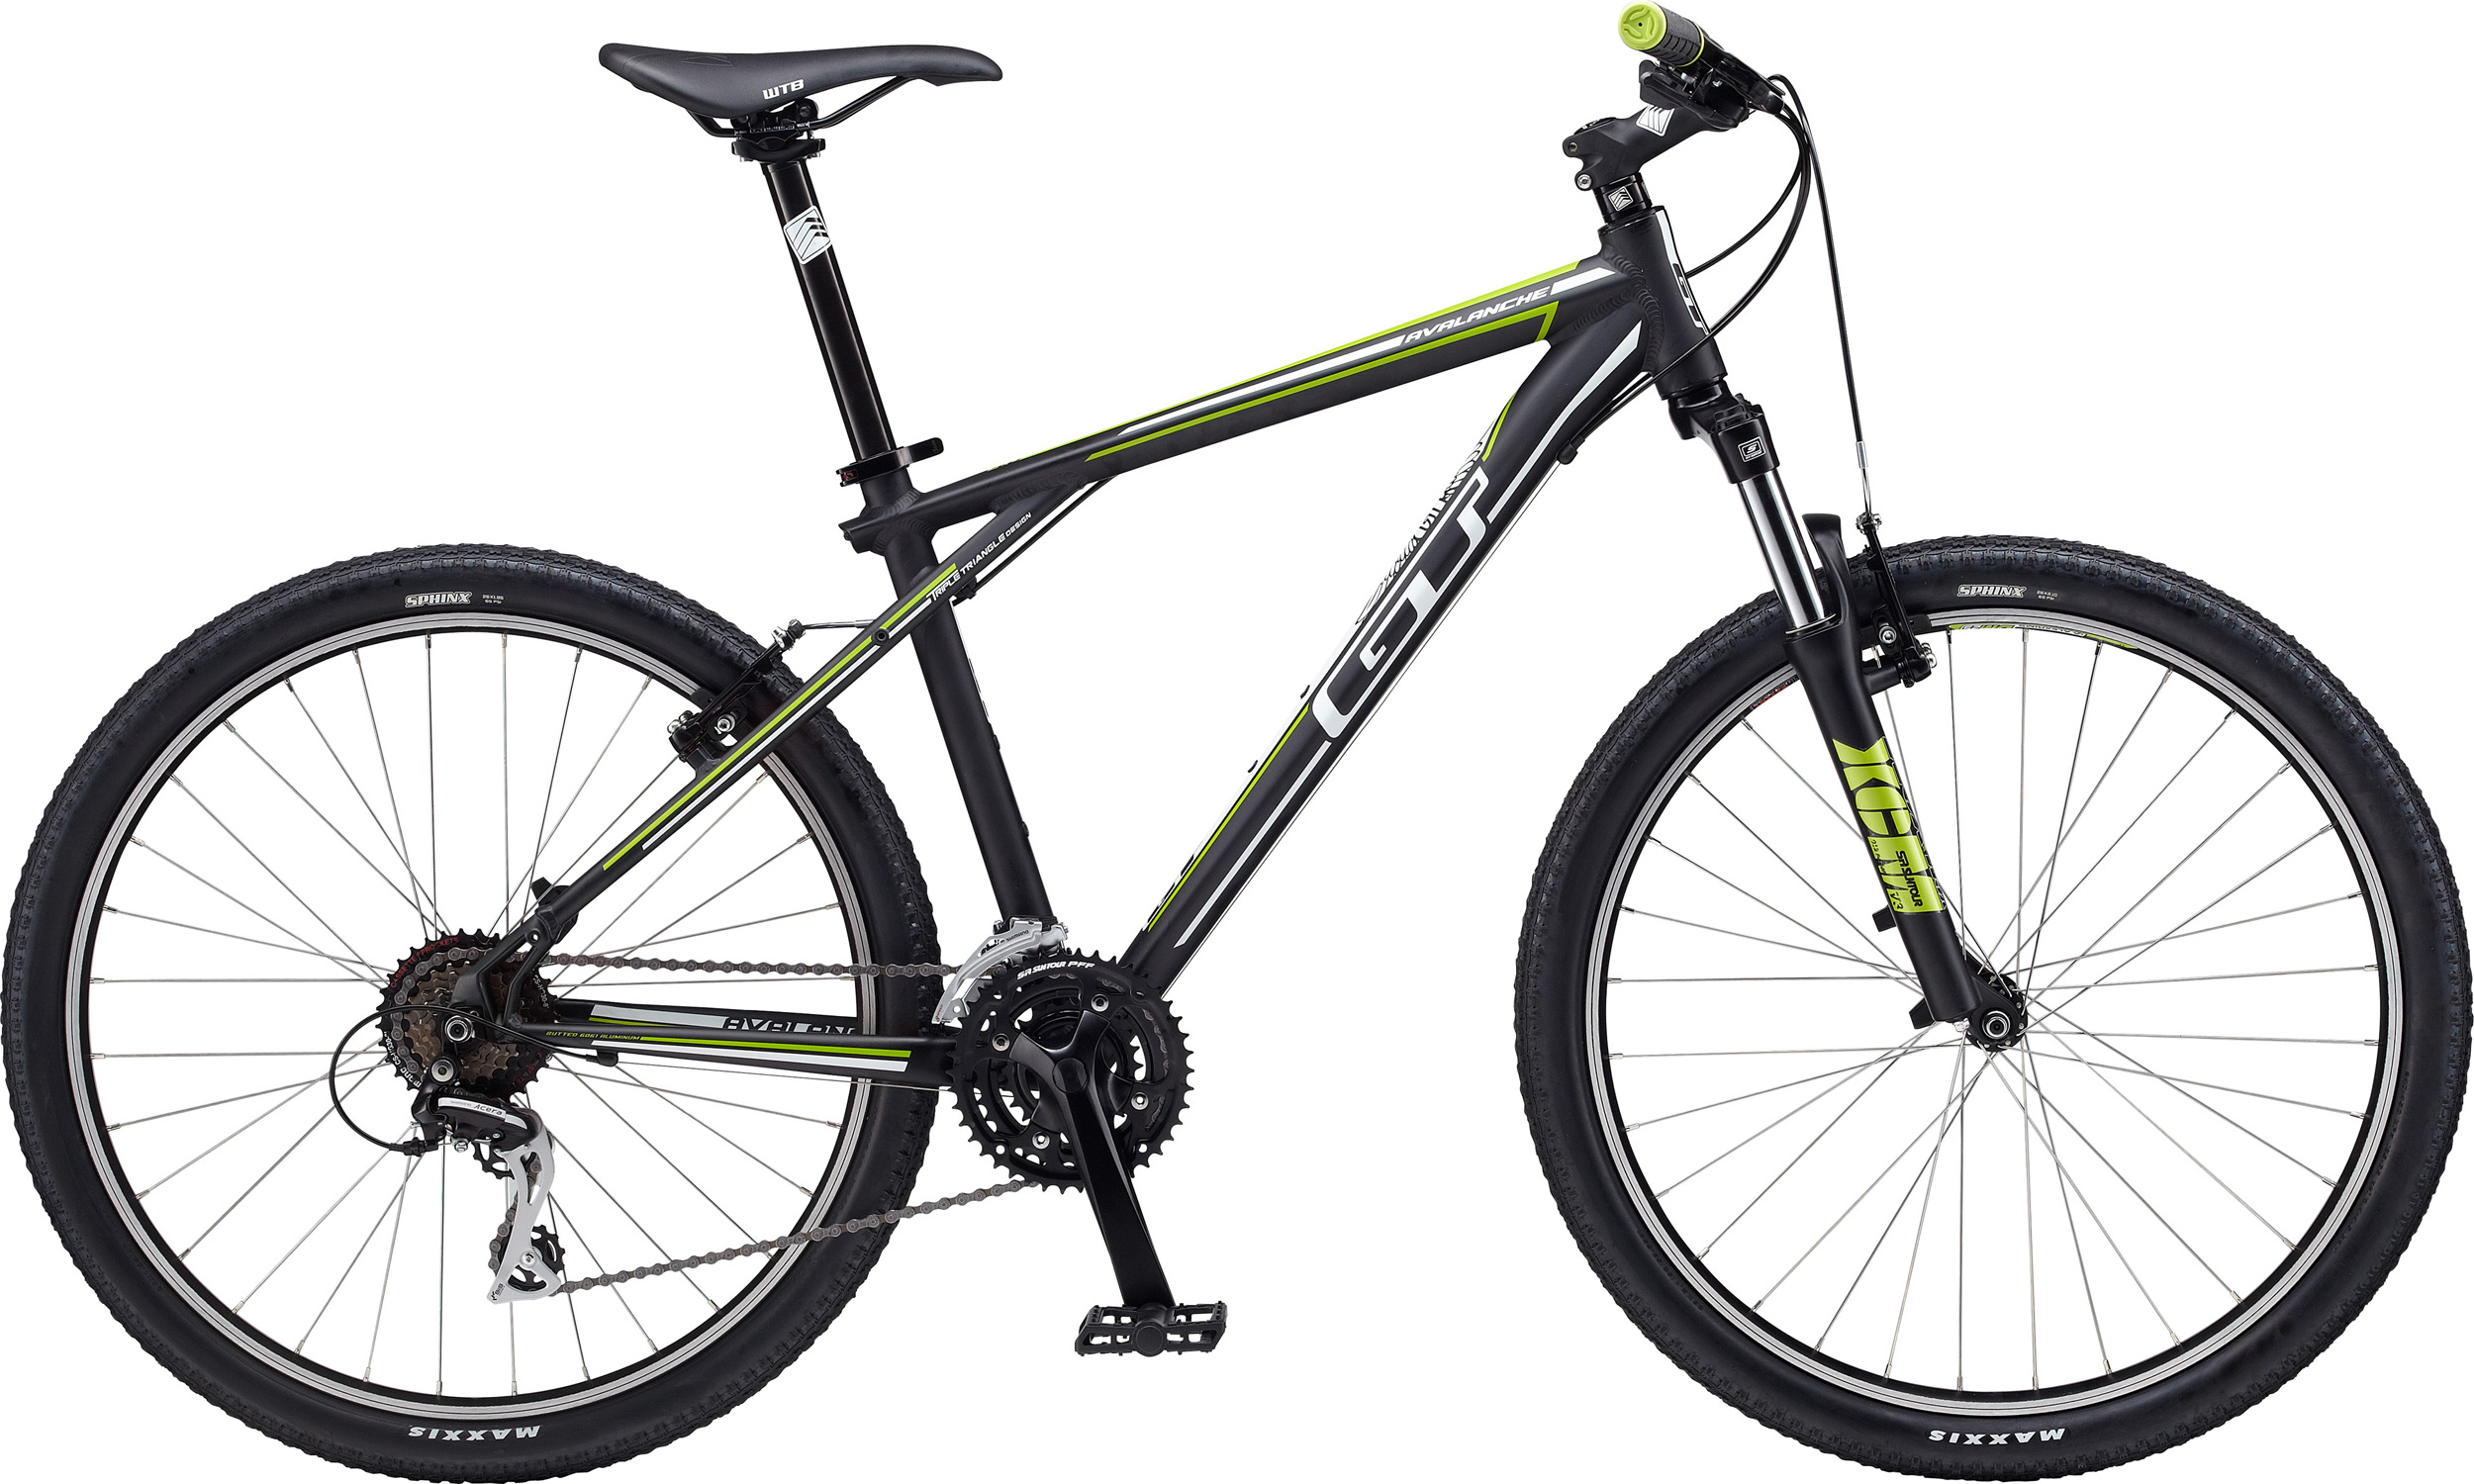 "Fitness Key Features of the GT Avalanche 4.0 Bike: Sizes: XS, S, M, L, XL, XXL Colors: Black, Blue, White Frame: Hydroformed 6061 T6 Aluminum Frame, w/ Triple Triangle, Replaceable Derailleur Hanger, Disc Brake Mounts, and Zerostack 1 1/8"" Head Tube Fork: SR Suntour XCT-MLO w/ 100mm Travel, Steel Stanchions, Aluminum Leg, Post Mount Disc Brake, Preload Adjust, Mechanical Lockout, QR Chain: KMC Z99 Crank: SR Suntour Nex-T102-Pb, 42/34/24T Bottom Bracket: Tange Sealed Pedals: GT Slim Line Flat Pedal Front Derailleur: Shimano Altus, FD-M190 Rear Derailleur: Shimano, Alivio, RD-M430 Shifters: Shimano Sl-M310, Rapid Fire Cog Set: Shimano CS-HG31-8, 11-32T, 8-Speed Cassette Rims: Alex MD17, Double Wall, 32H Tires: Maxxis Sphinx 26X2.10"" F, 26x1.95 R Hubs: All Terra Alloy Disc, W/ Quick Release Rear Hub: All Terra Alloy Cassette Disc, W/ Quick Release Spokes: 14G Stainless Nipples: BRASS Brake: Tektro Novela Cable Disc, W/ 160mm Rotor Brake Levers: Tektro Handlebar: All Terra 6061 Aluminum Riser, 685mm Width, 30mm Rise, 31.8mm Clamp Stem: All Terra 1 1/8"" Threadless, 3D Forged, 4-Bolt W/ CNC Face Plate, 5 degree Rise, 31.8mm Clamp Grips: GT Slim Line Racing Wing W/ Waffle Headset: Tange Seiki 1 1/8"" Threadless, Zerostack Saddle: All Terra Tacoma Seat Post: All Terra Alloy Micro-Adjust, 30.9mm Seat Clamp: All Terra Alloy QR - $311.95"